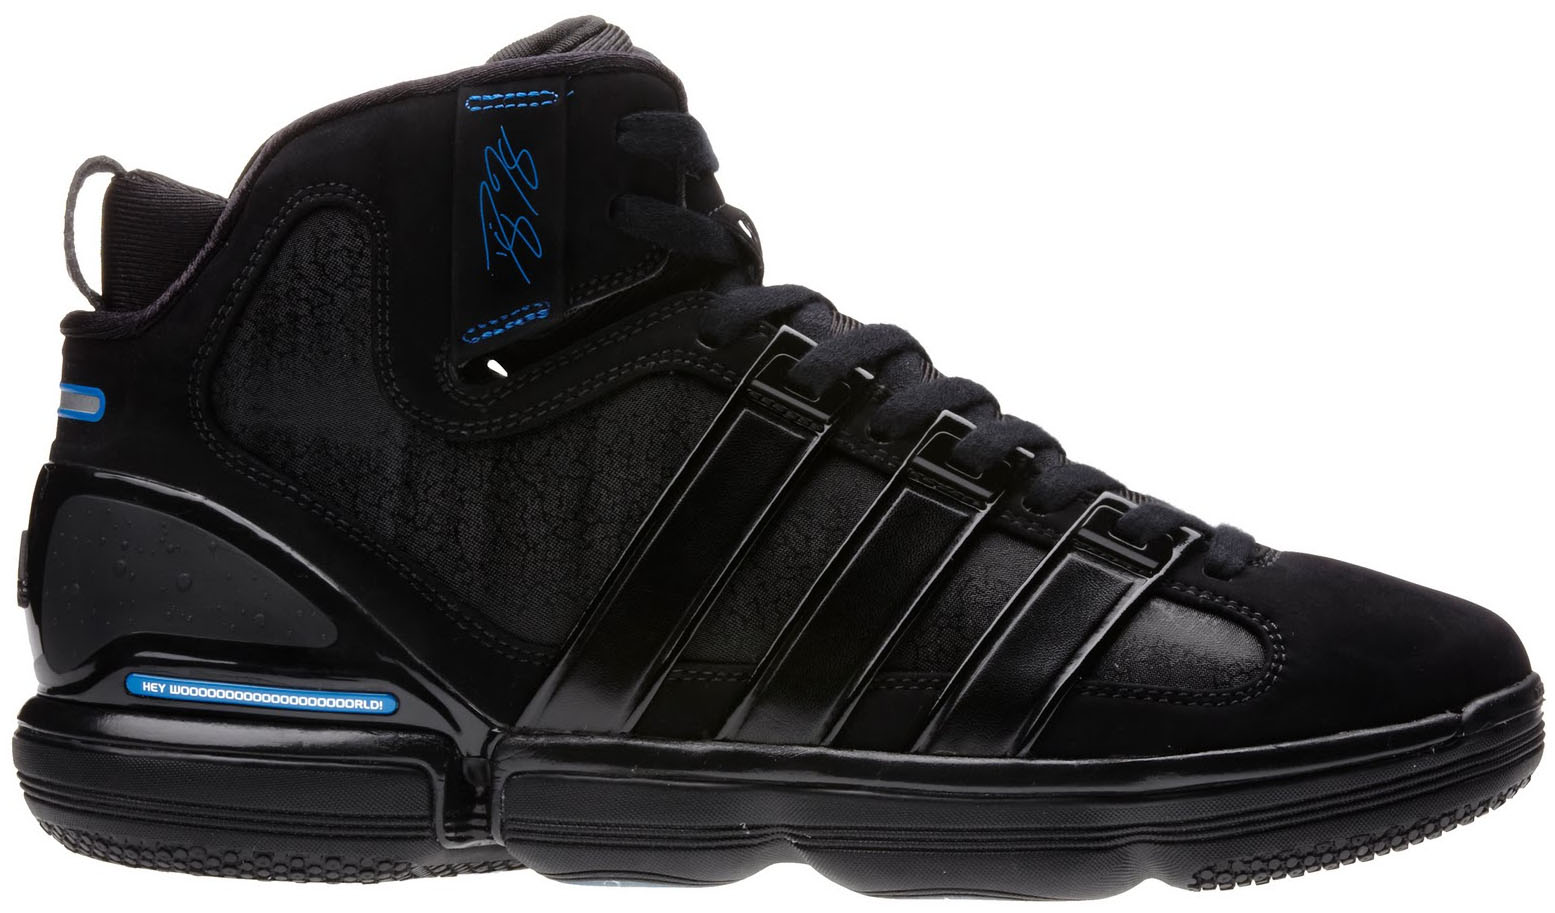 hot sale online 19d54 47bf0 Dwight Howards Orlando Magic adidas Sneaker History - Beast Commander Away  (1)